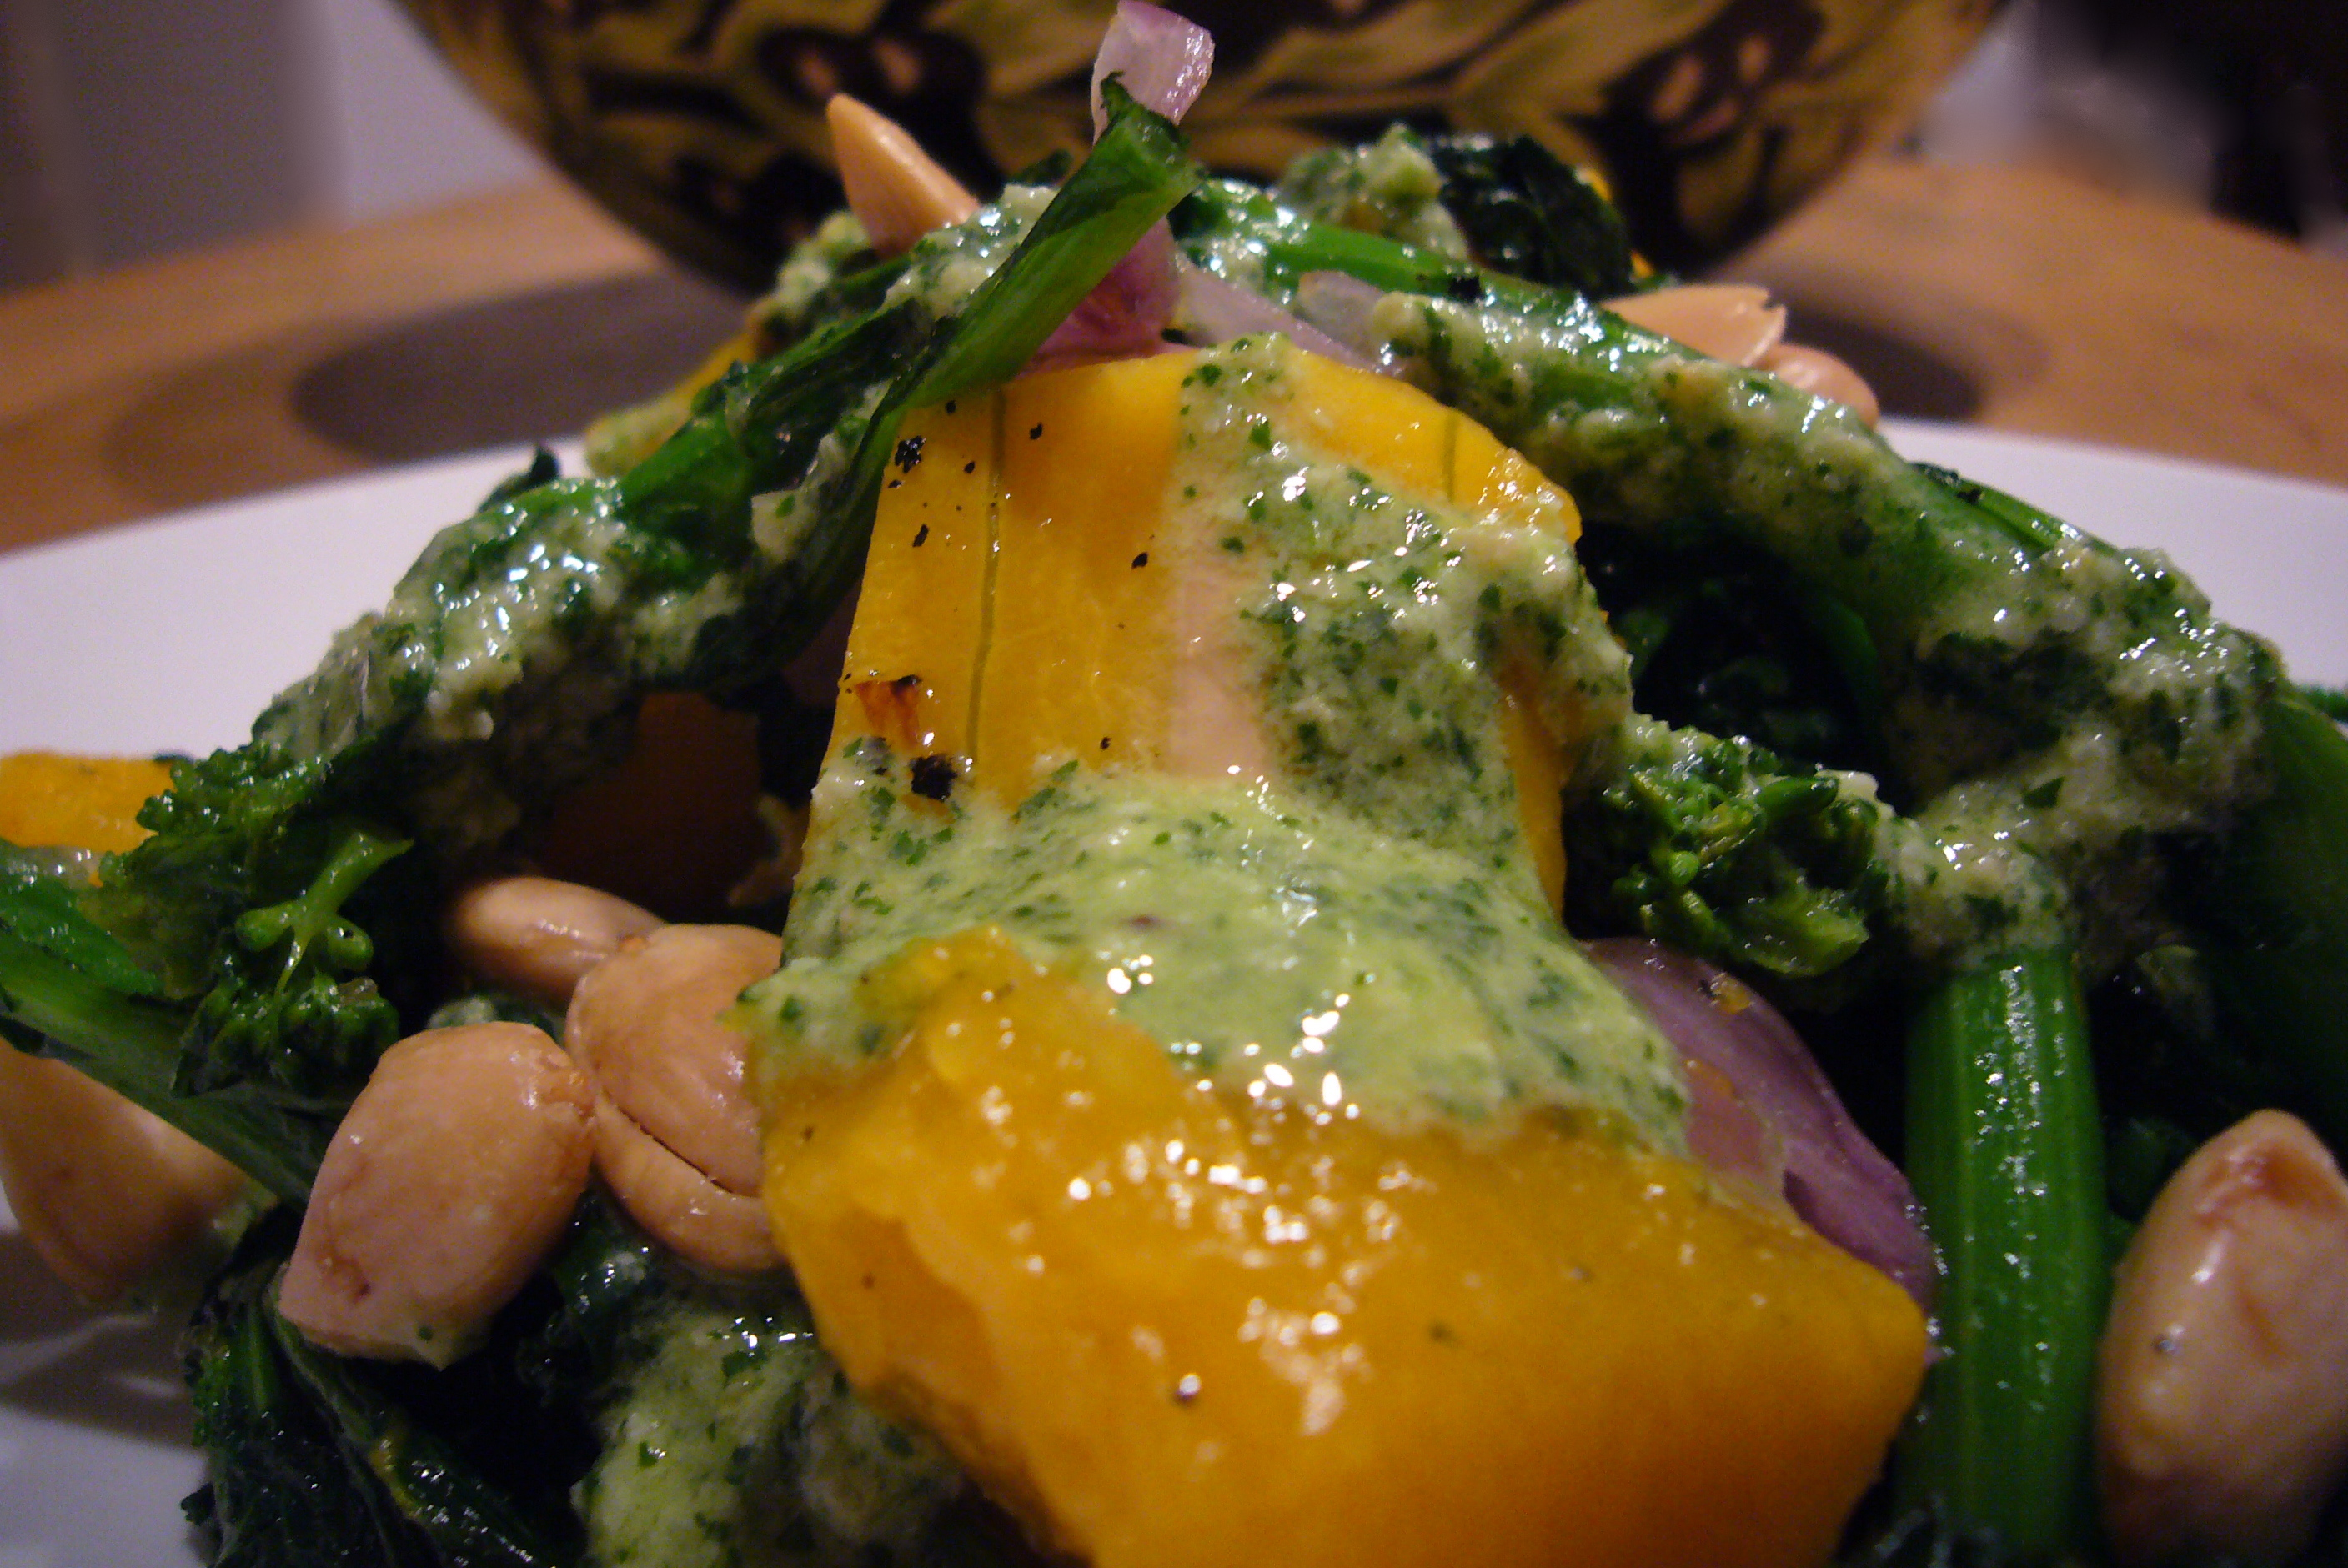 Roasted Butternut Squash and Rapini Sauté with Creamy Pumpkin Seed and Cilantro Dressing